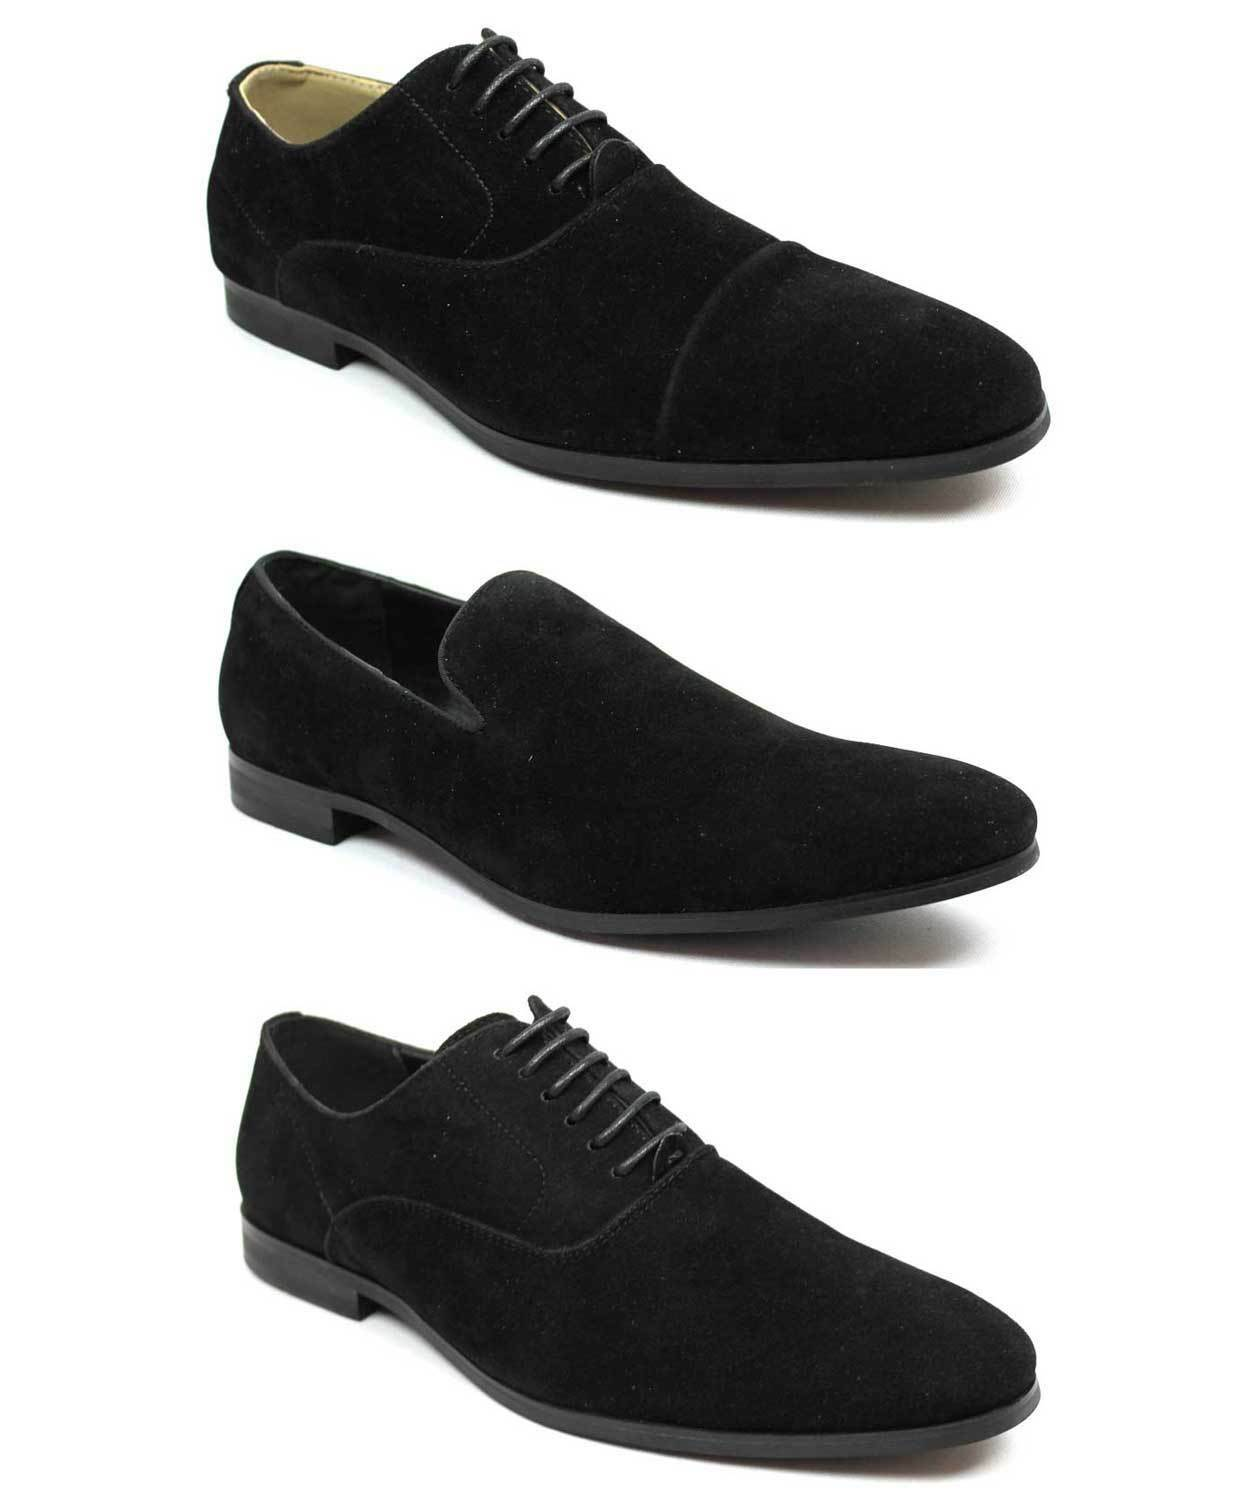 New Mens Black Suede Dress Shoes Lace Up Oxfords & Slip On Option Formal By AZAR